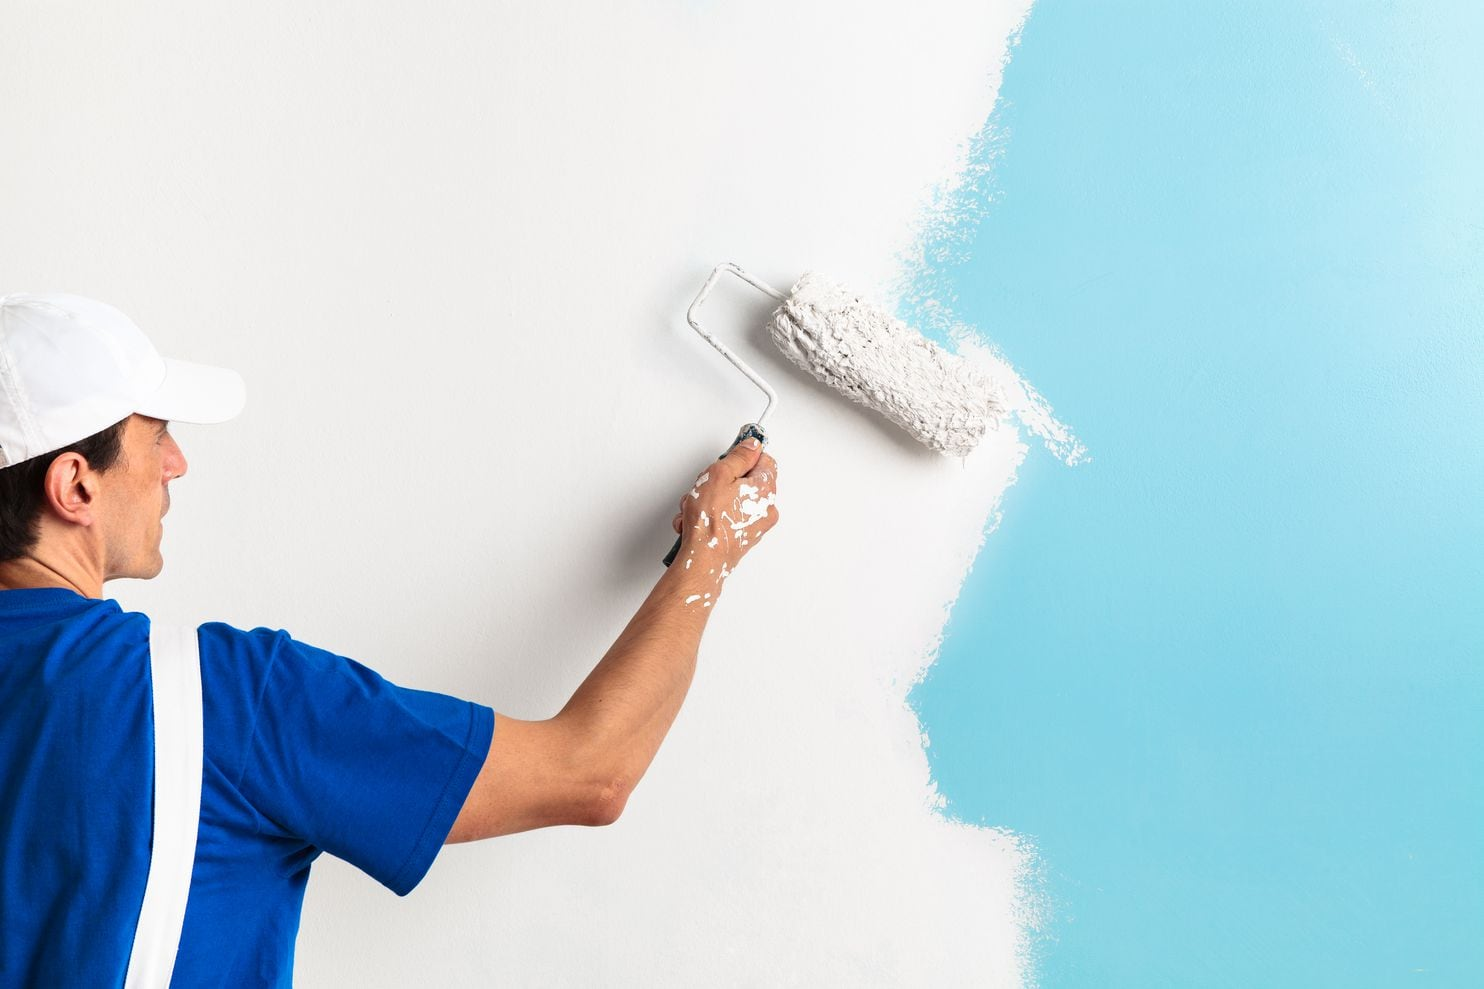 Industrial Paint Service Provider Business In Toronto, Ontario